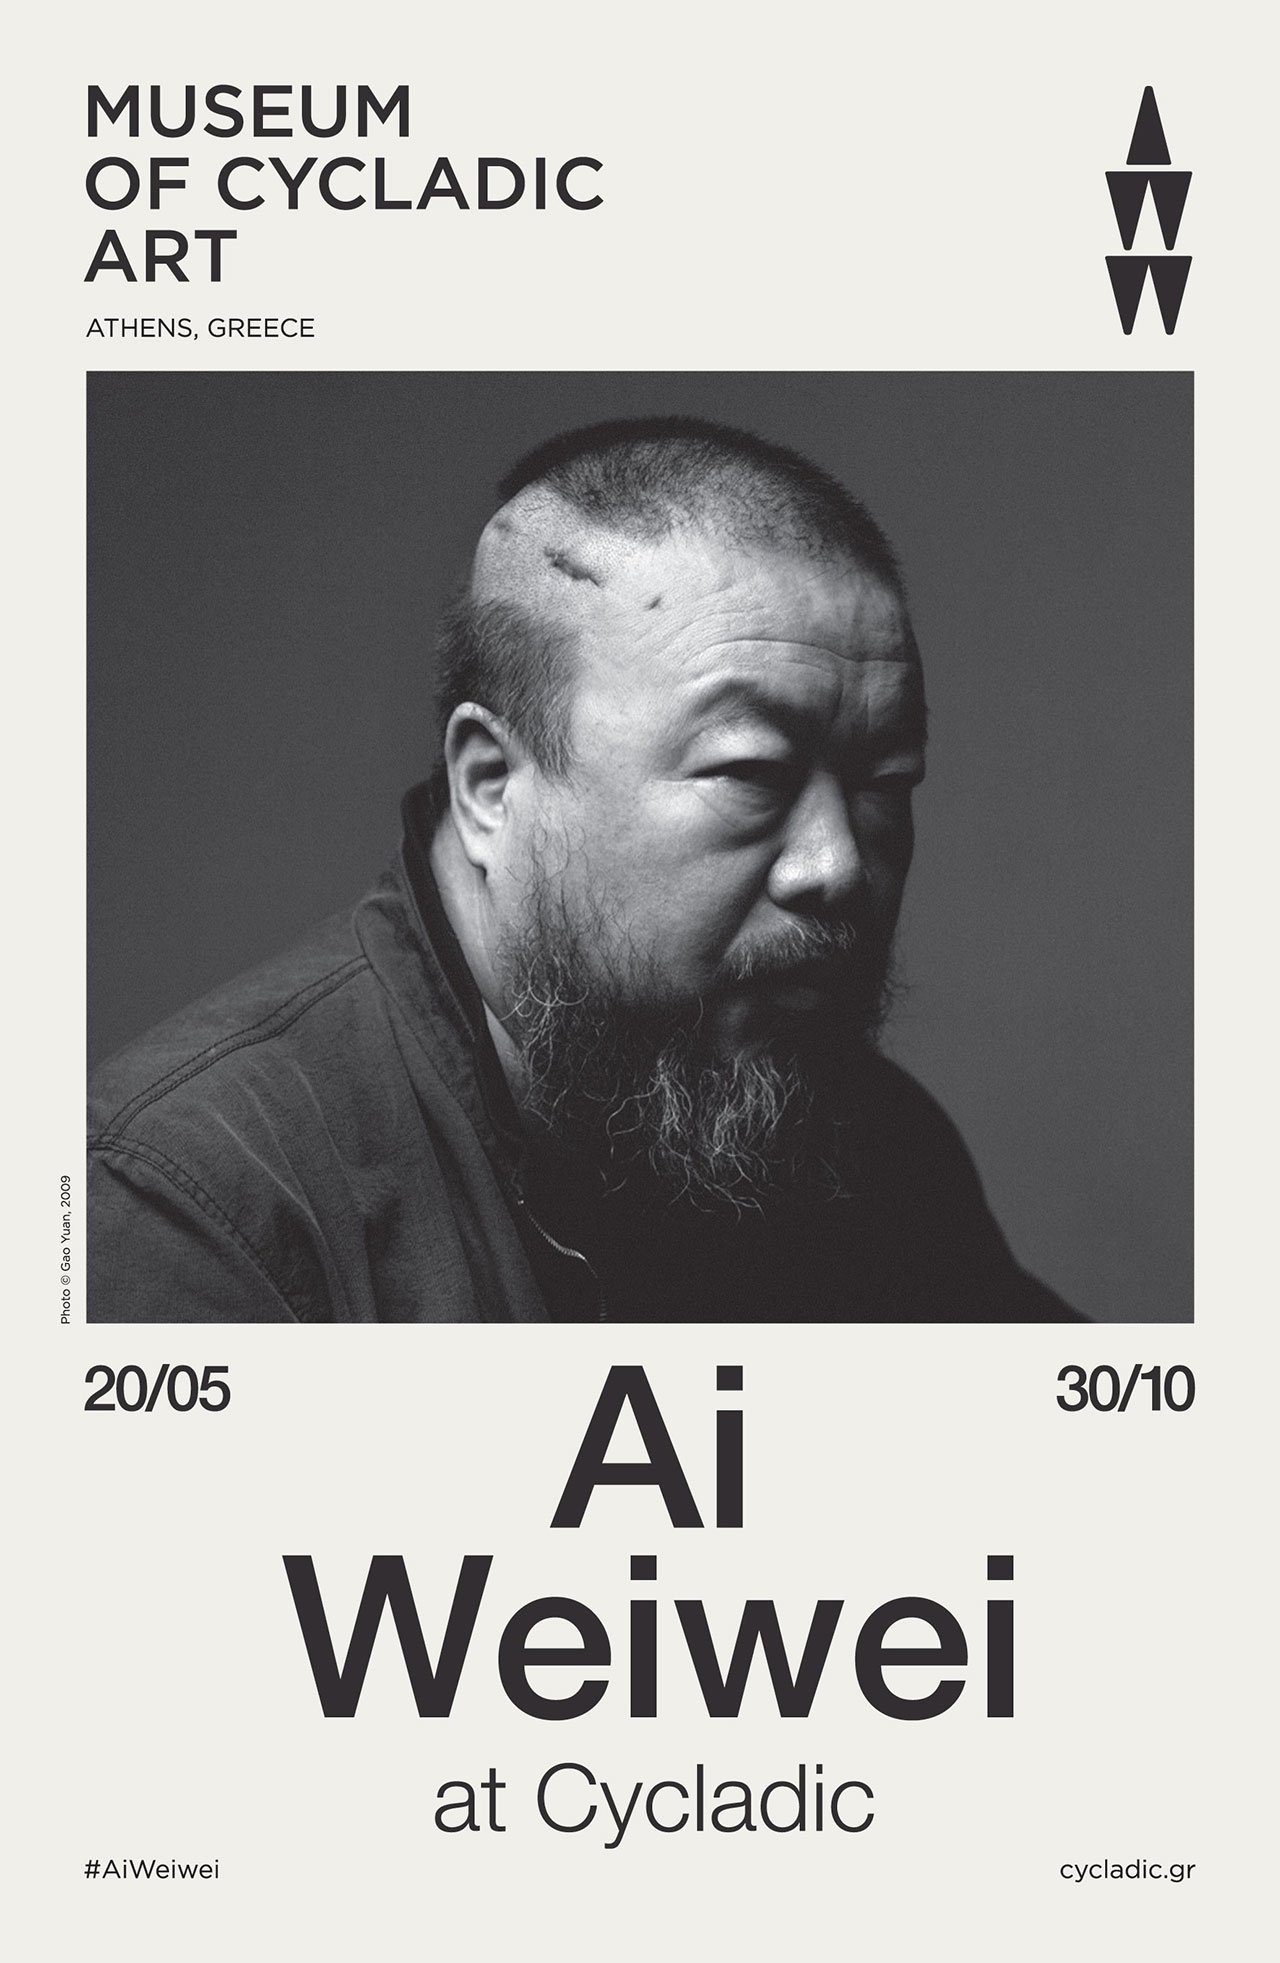 Ai Weiwei at Cycladic, Exhibition poster © Museum of Cycladic Art.